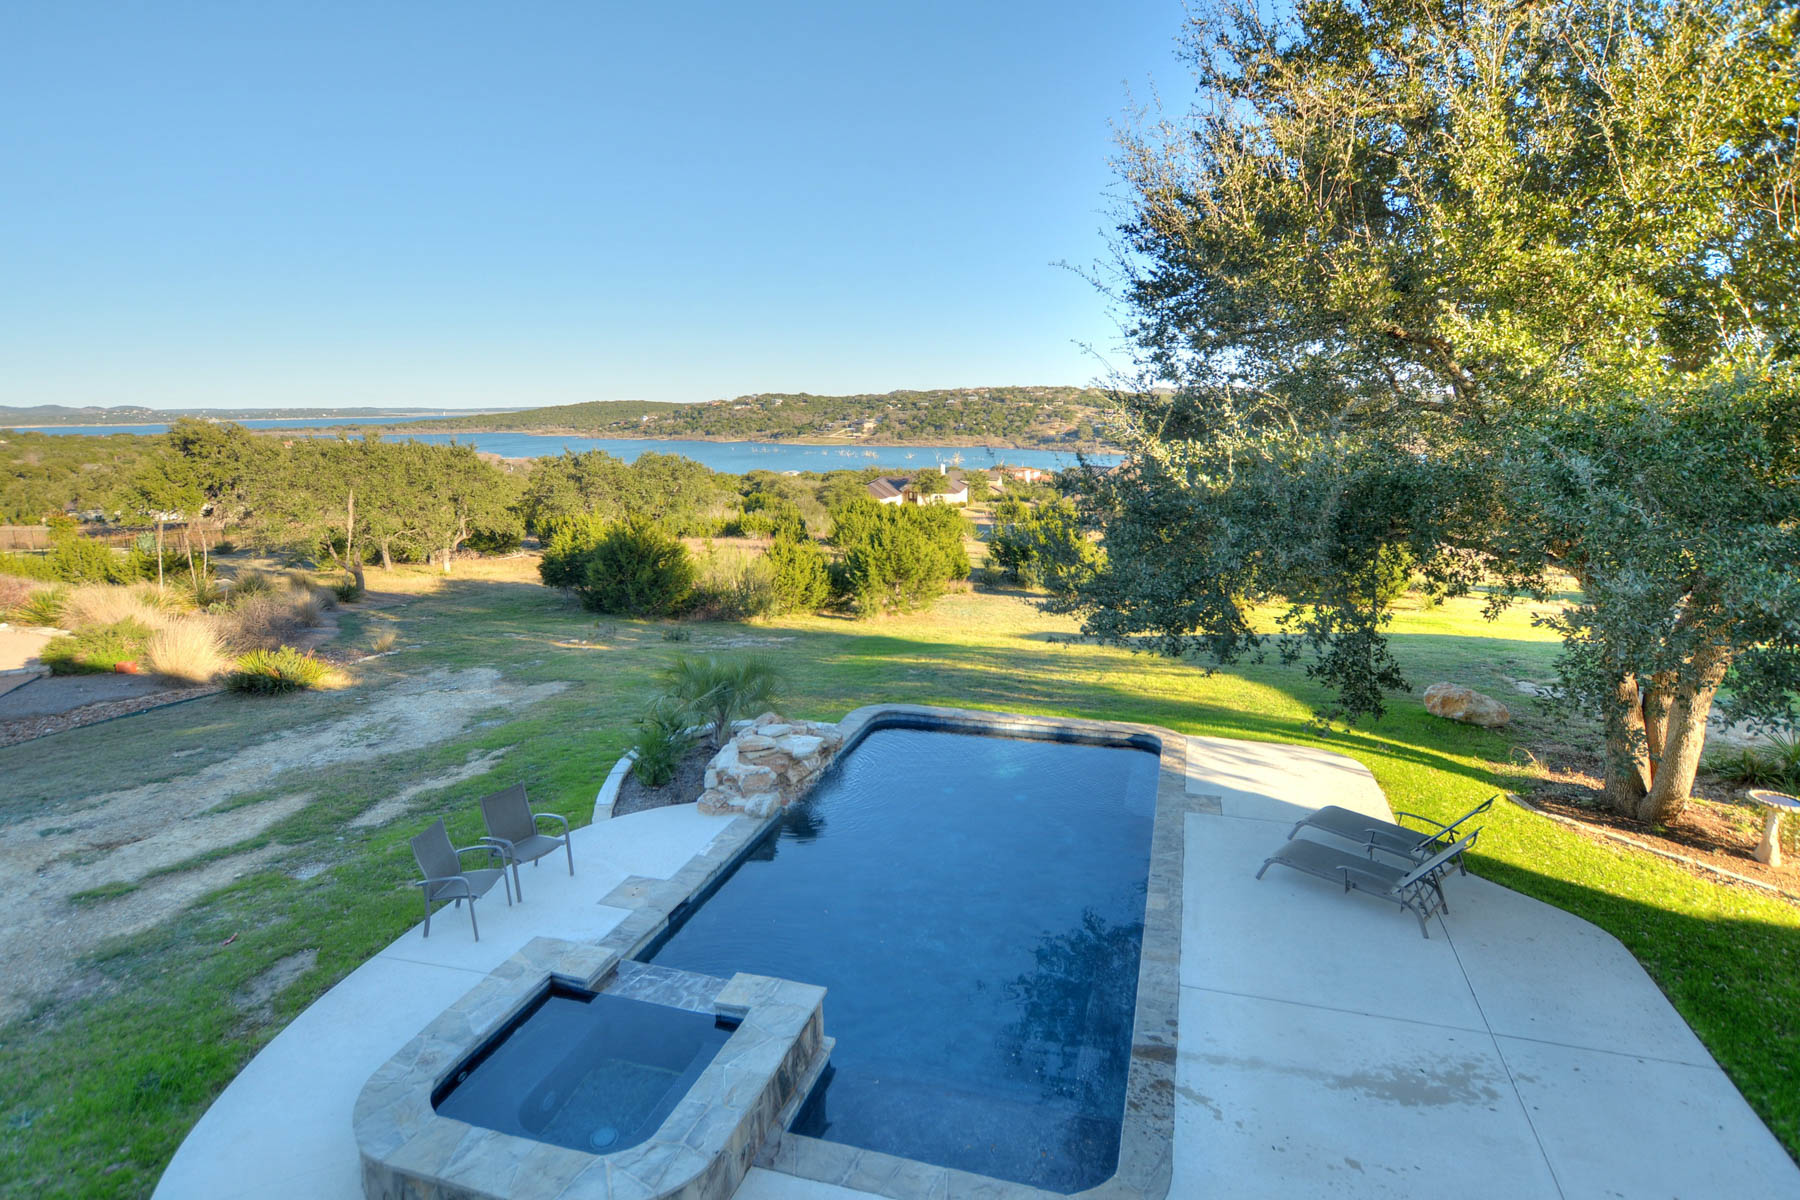 Additional photo for property listing at 1.02+- Acres Overlooking Canyon Lake 255 San Salvadore Canyon Lake, Texas 78133 United States